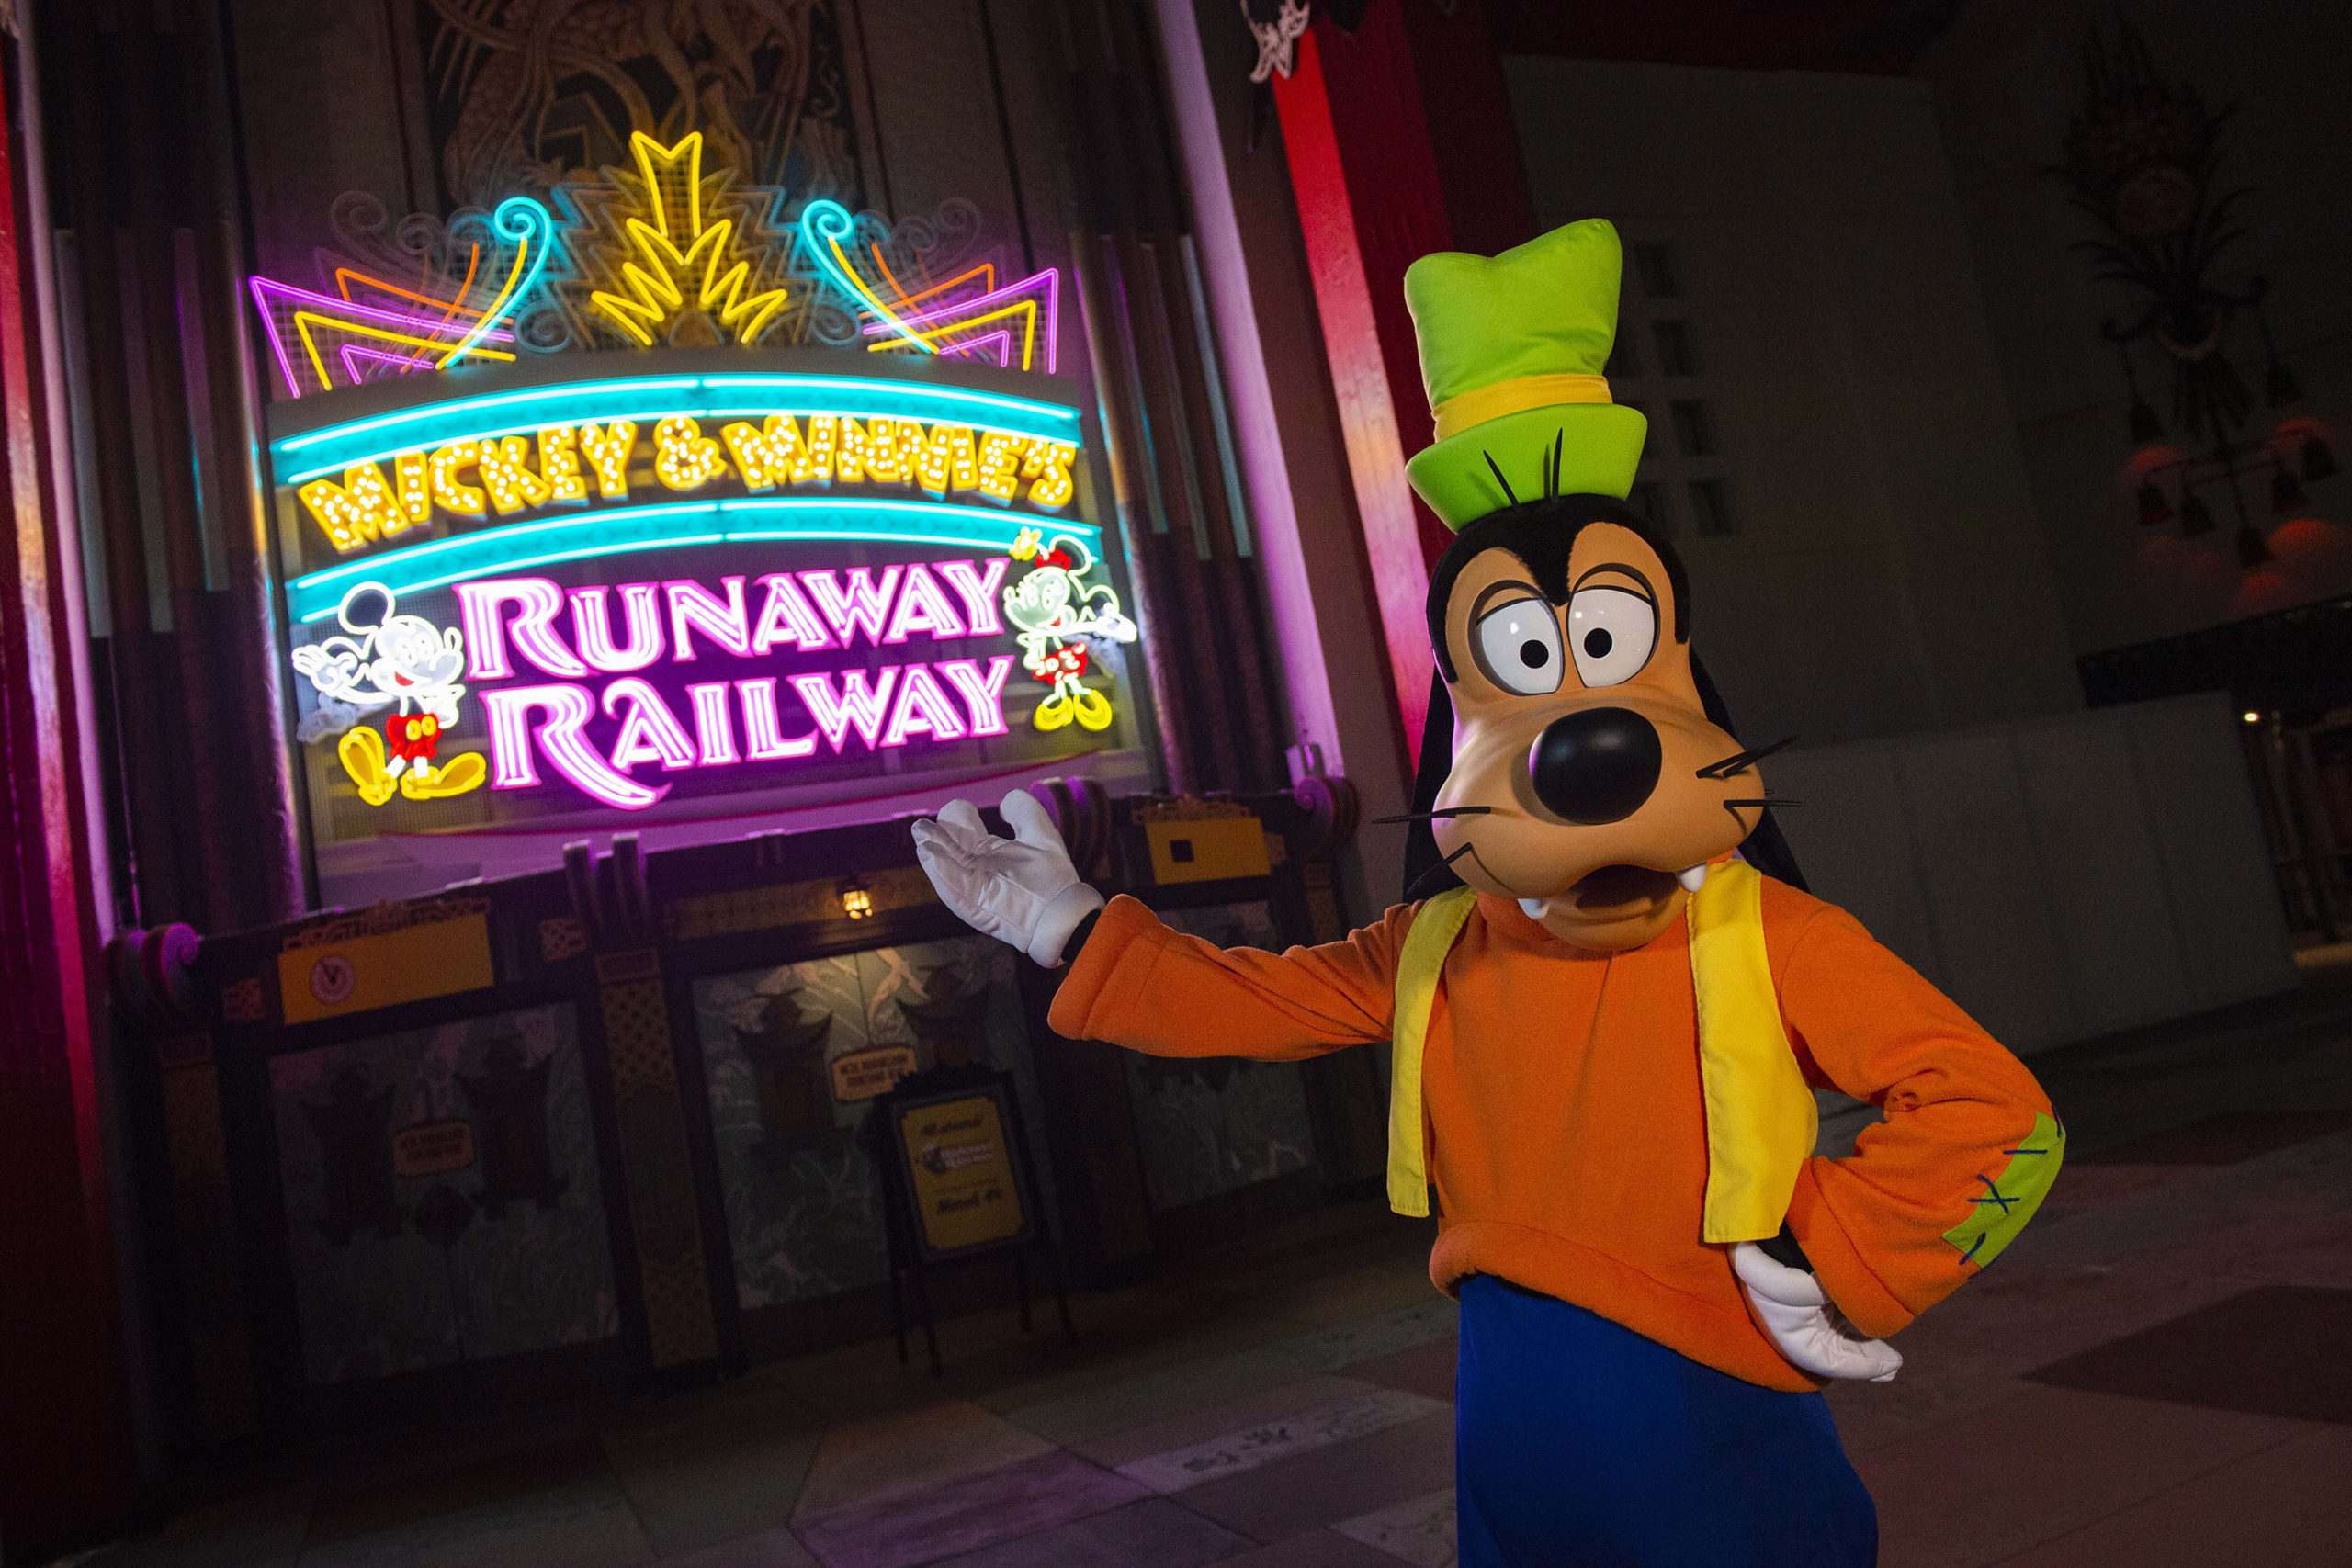 Goofy with Disney sign